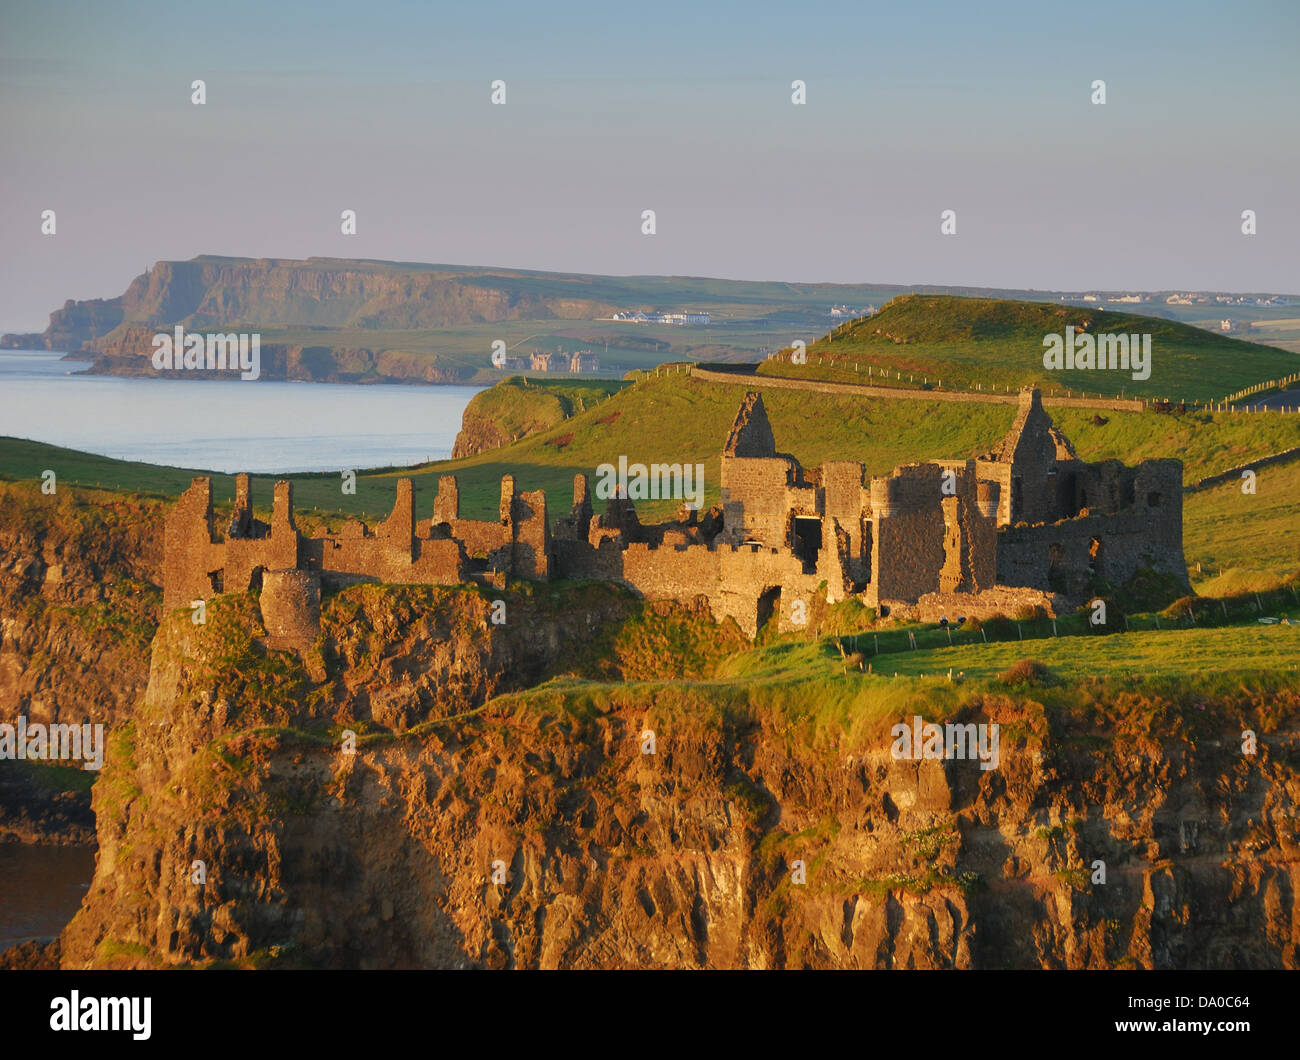 Photograph of Dunluce Castle, County Antrim, Northern Ireland. - Stock Image